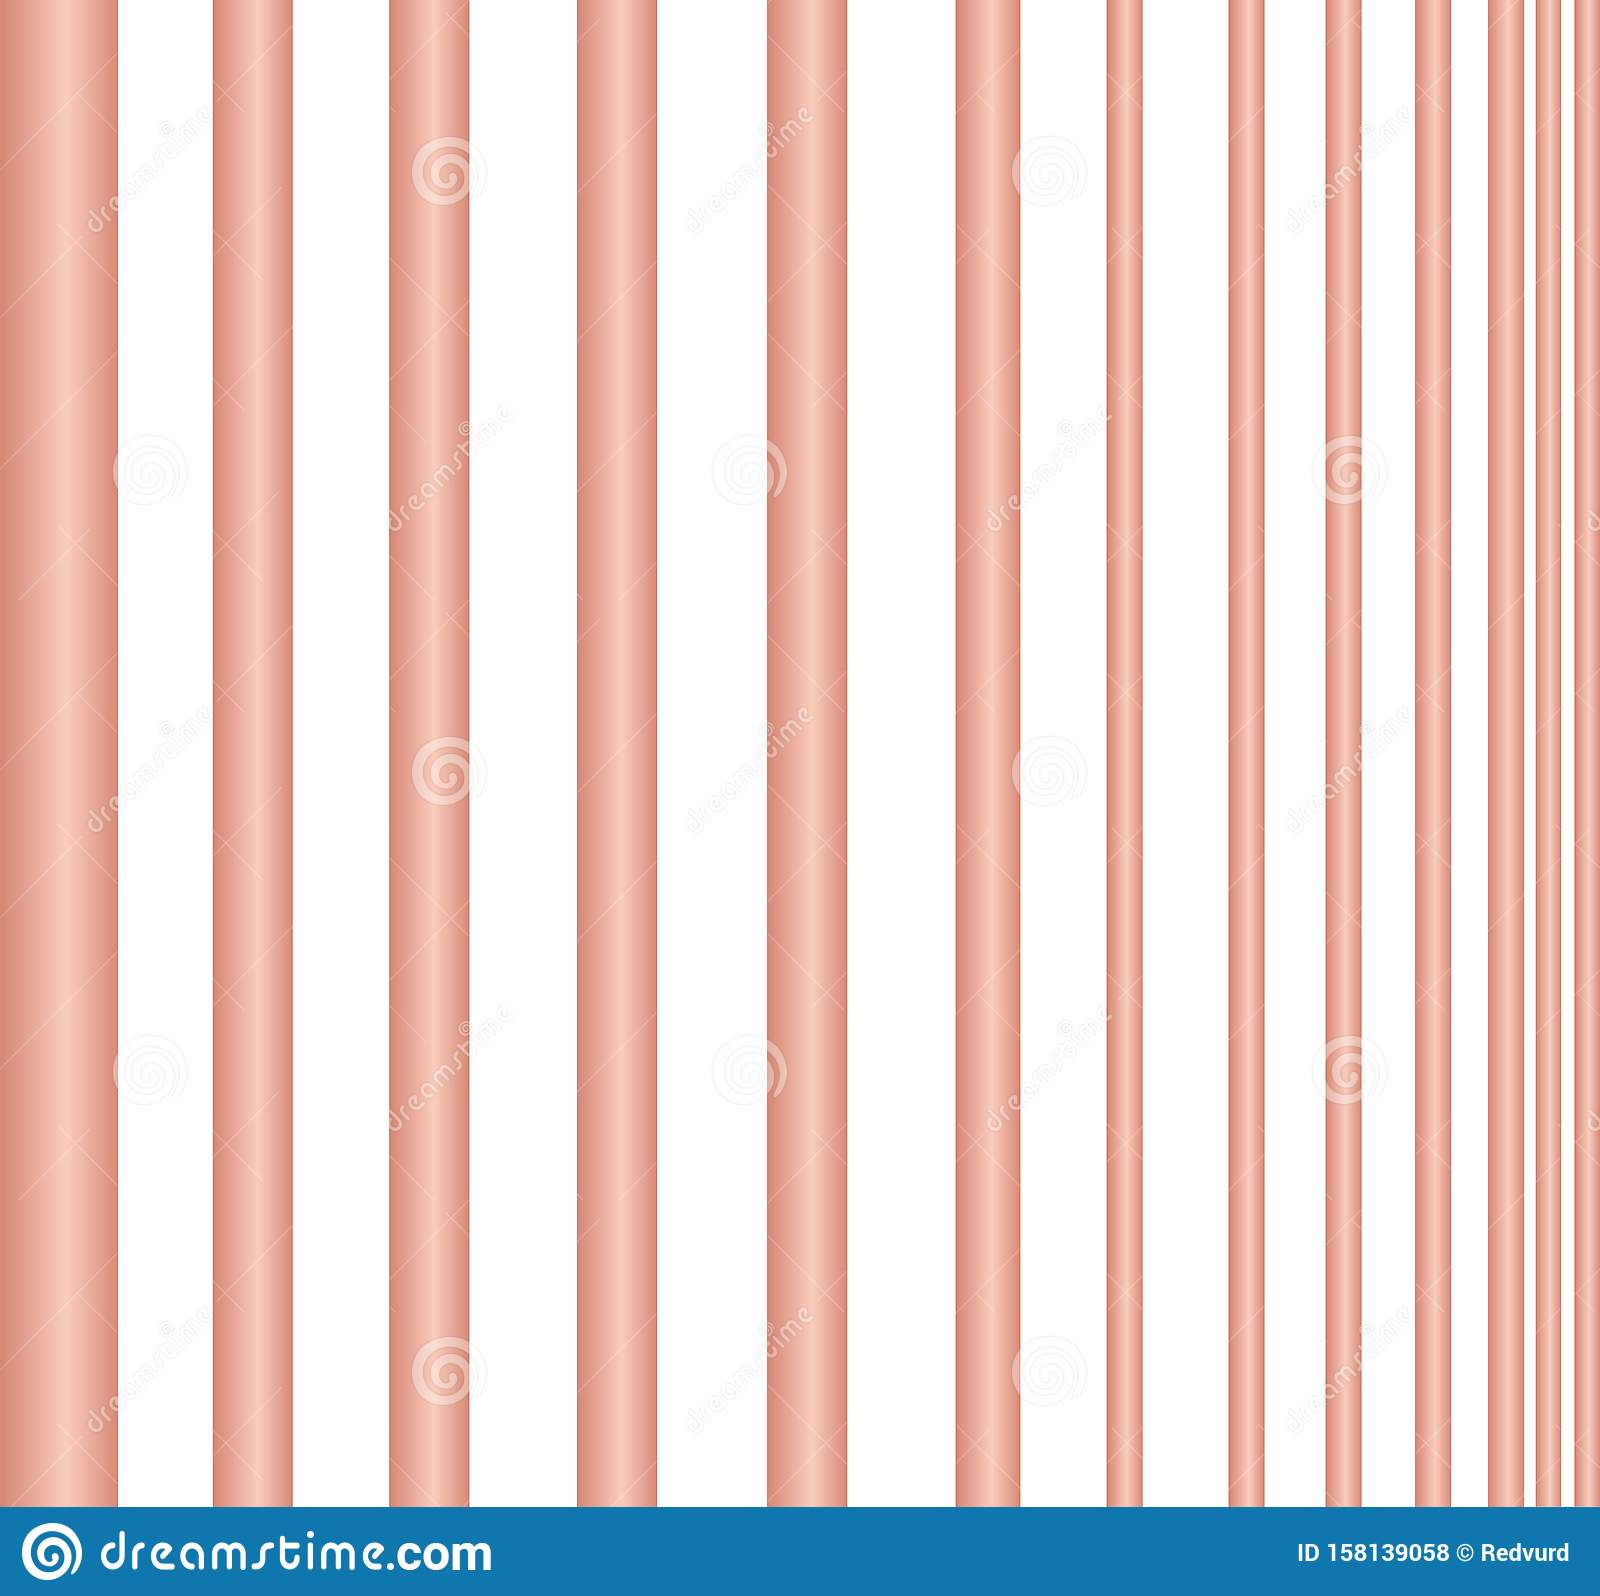 Abstract Pink Glitter Vertical Lines Close Up Painting Pattern Of Stripes Isolated On White Background Art For Design Business Stock Vector Illustration Of Beauty Concept 158139058